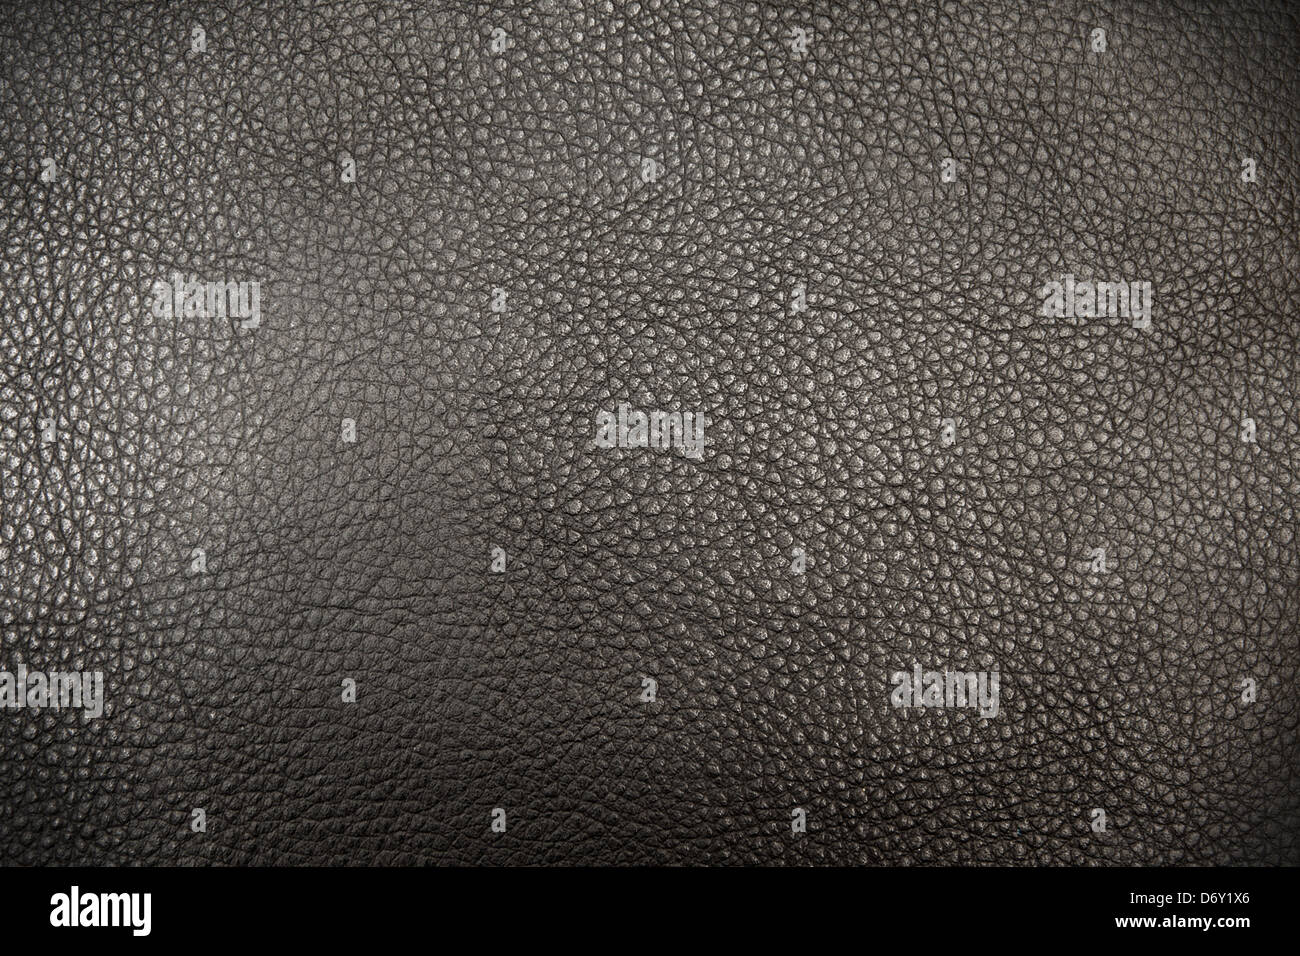 Black genuine natural leather (skin) texture (background) - Stock Image